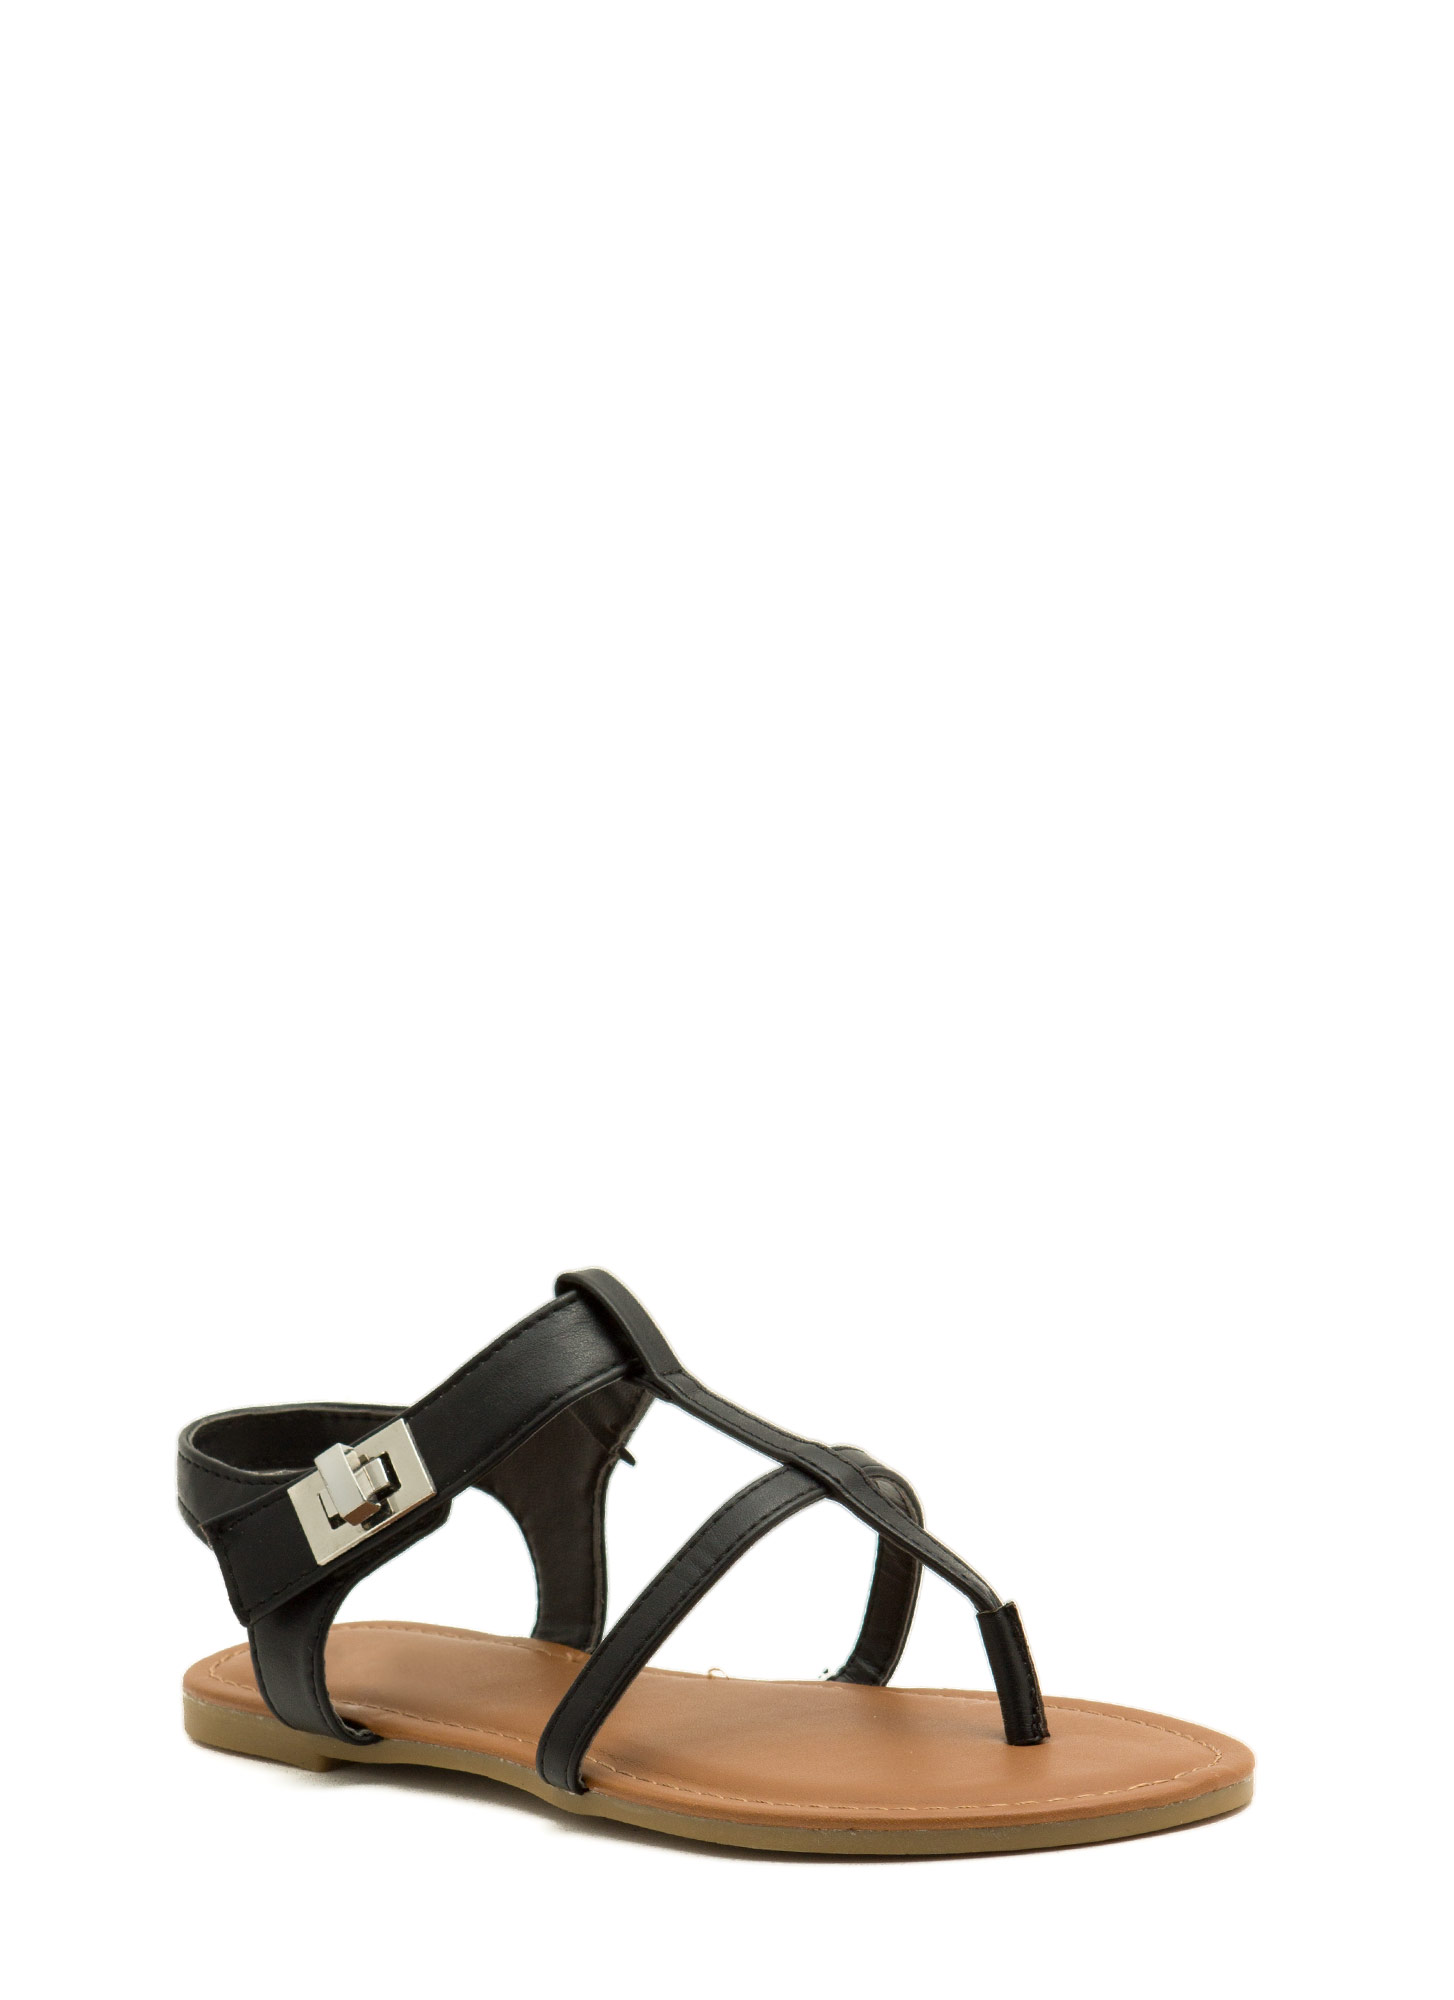 Locked Away Ankle Strap Sandals BLACK